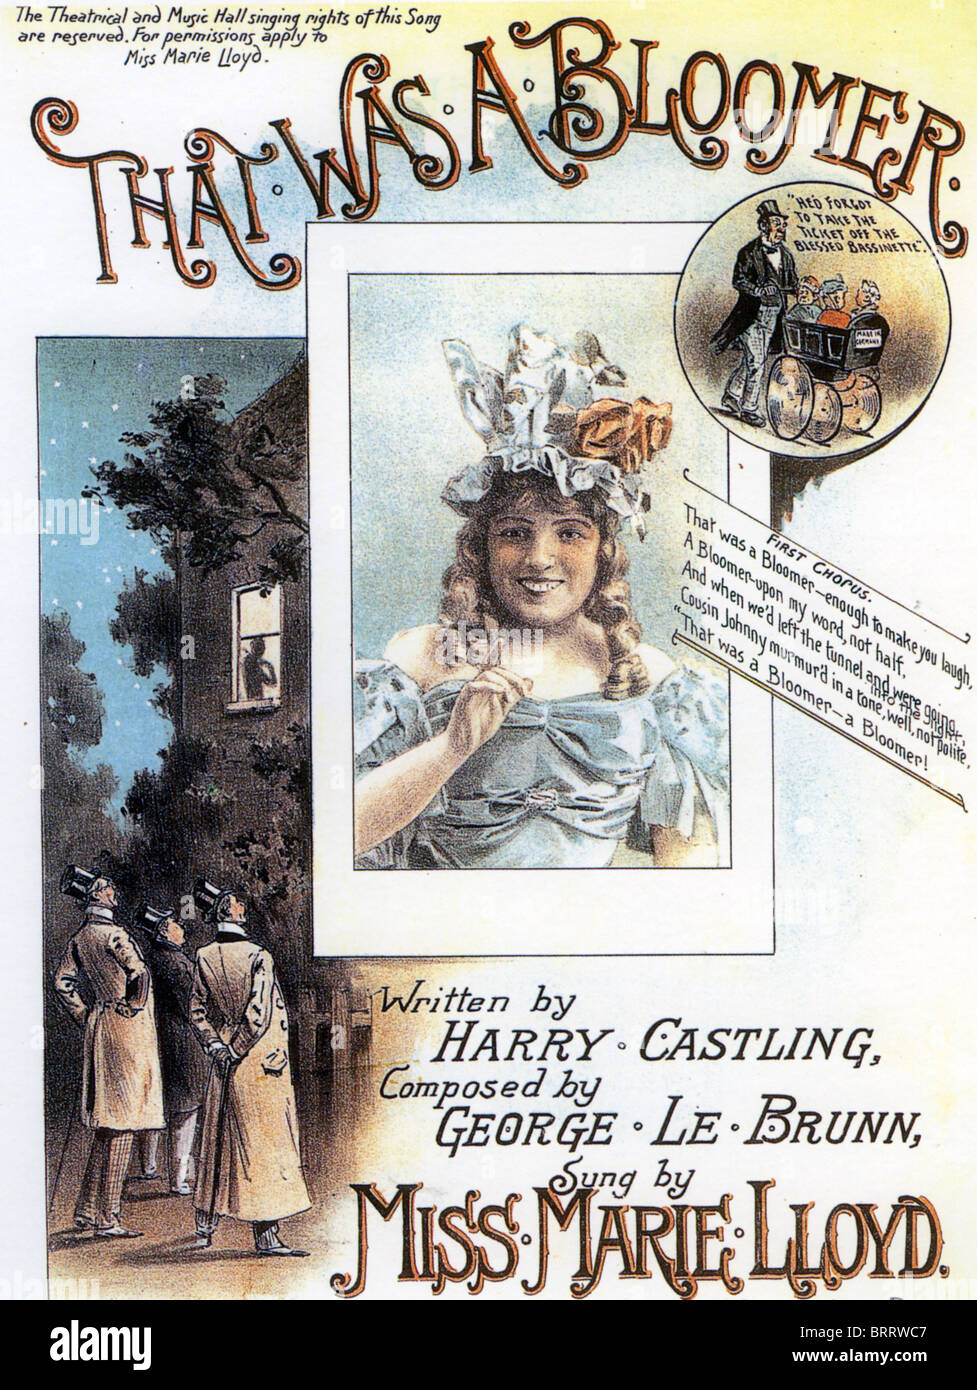 MARIE LLOYD (1870-1922) Sheet music for her song That Was A Bloomer about 1895 - Stock Image